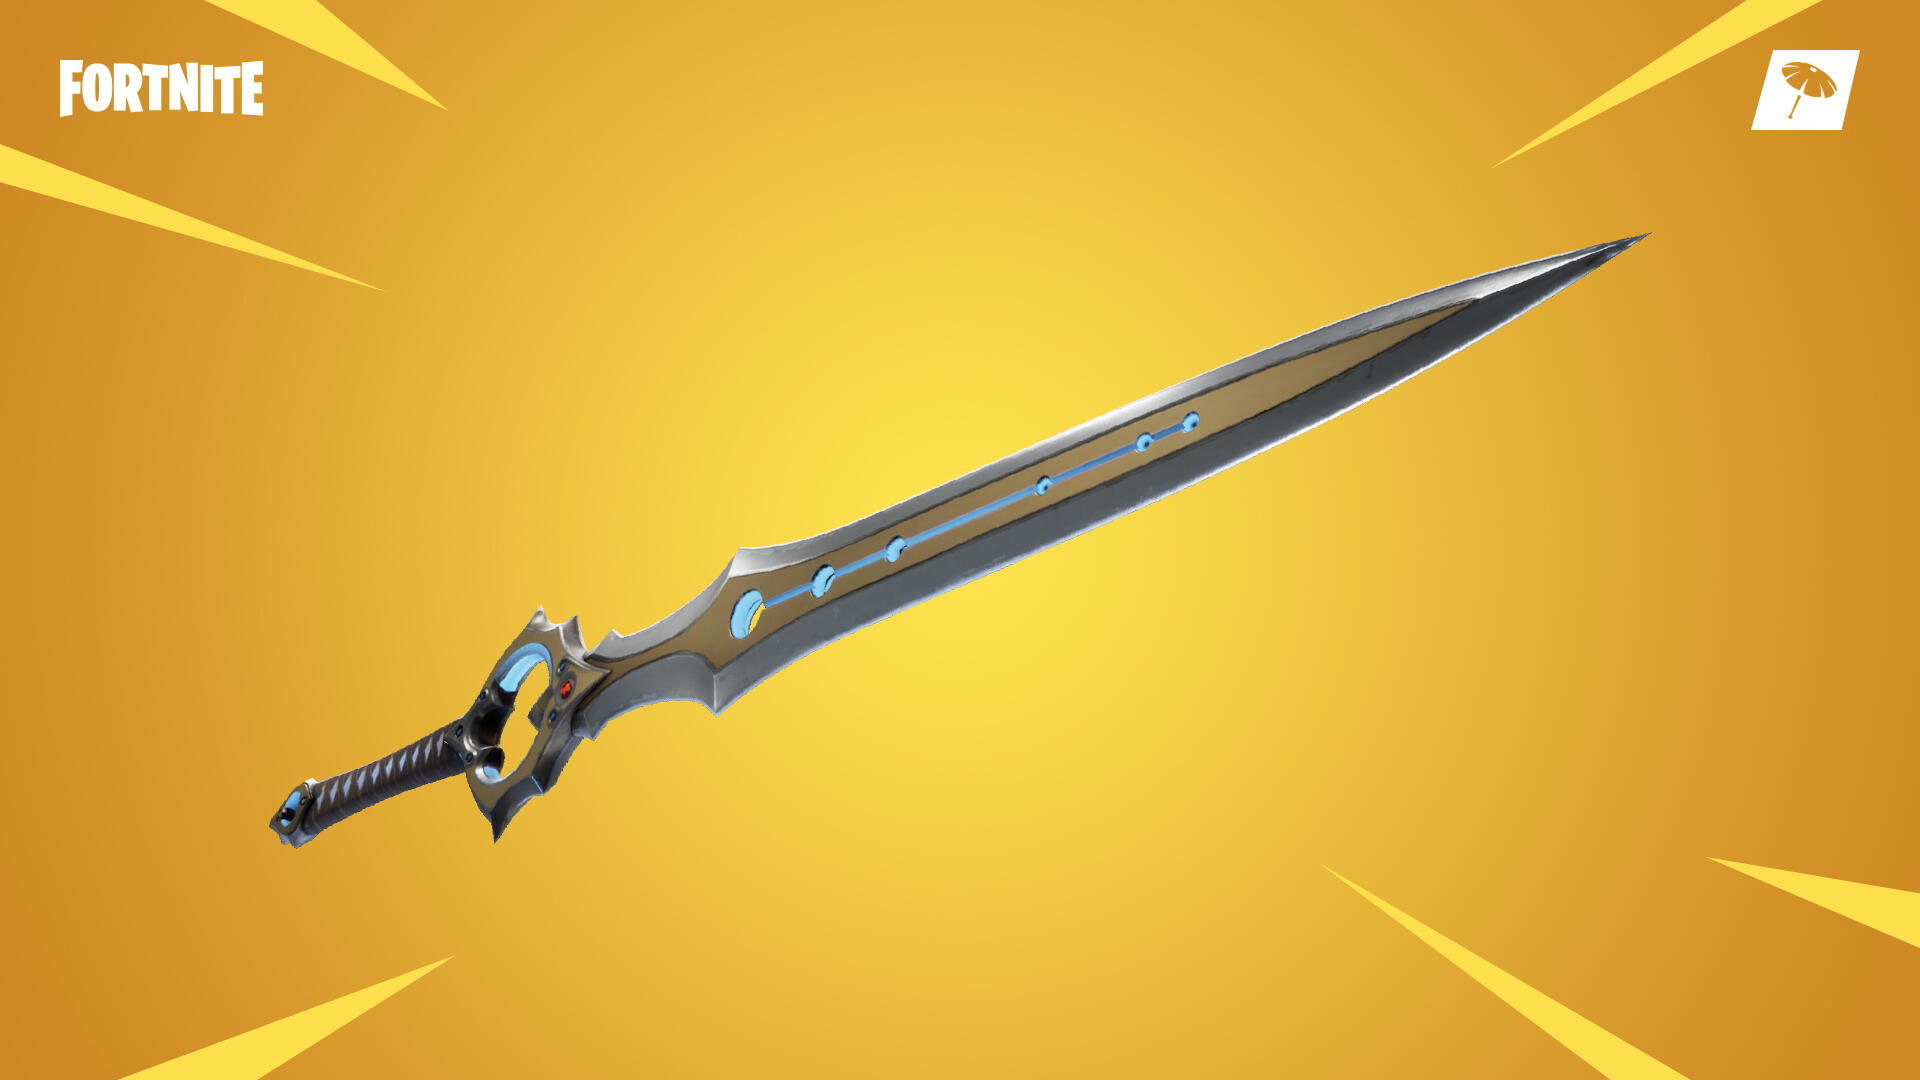 """Fortnite Removes Overpowered Infinity Blade From Game: """"We Messed Up"""""""